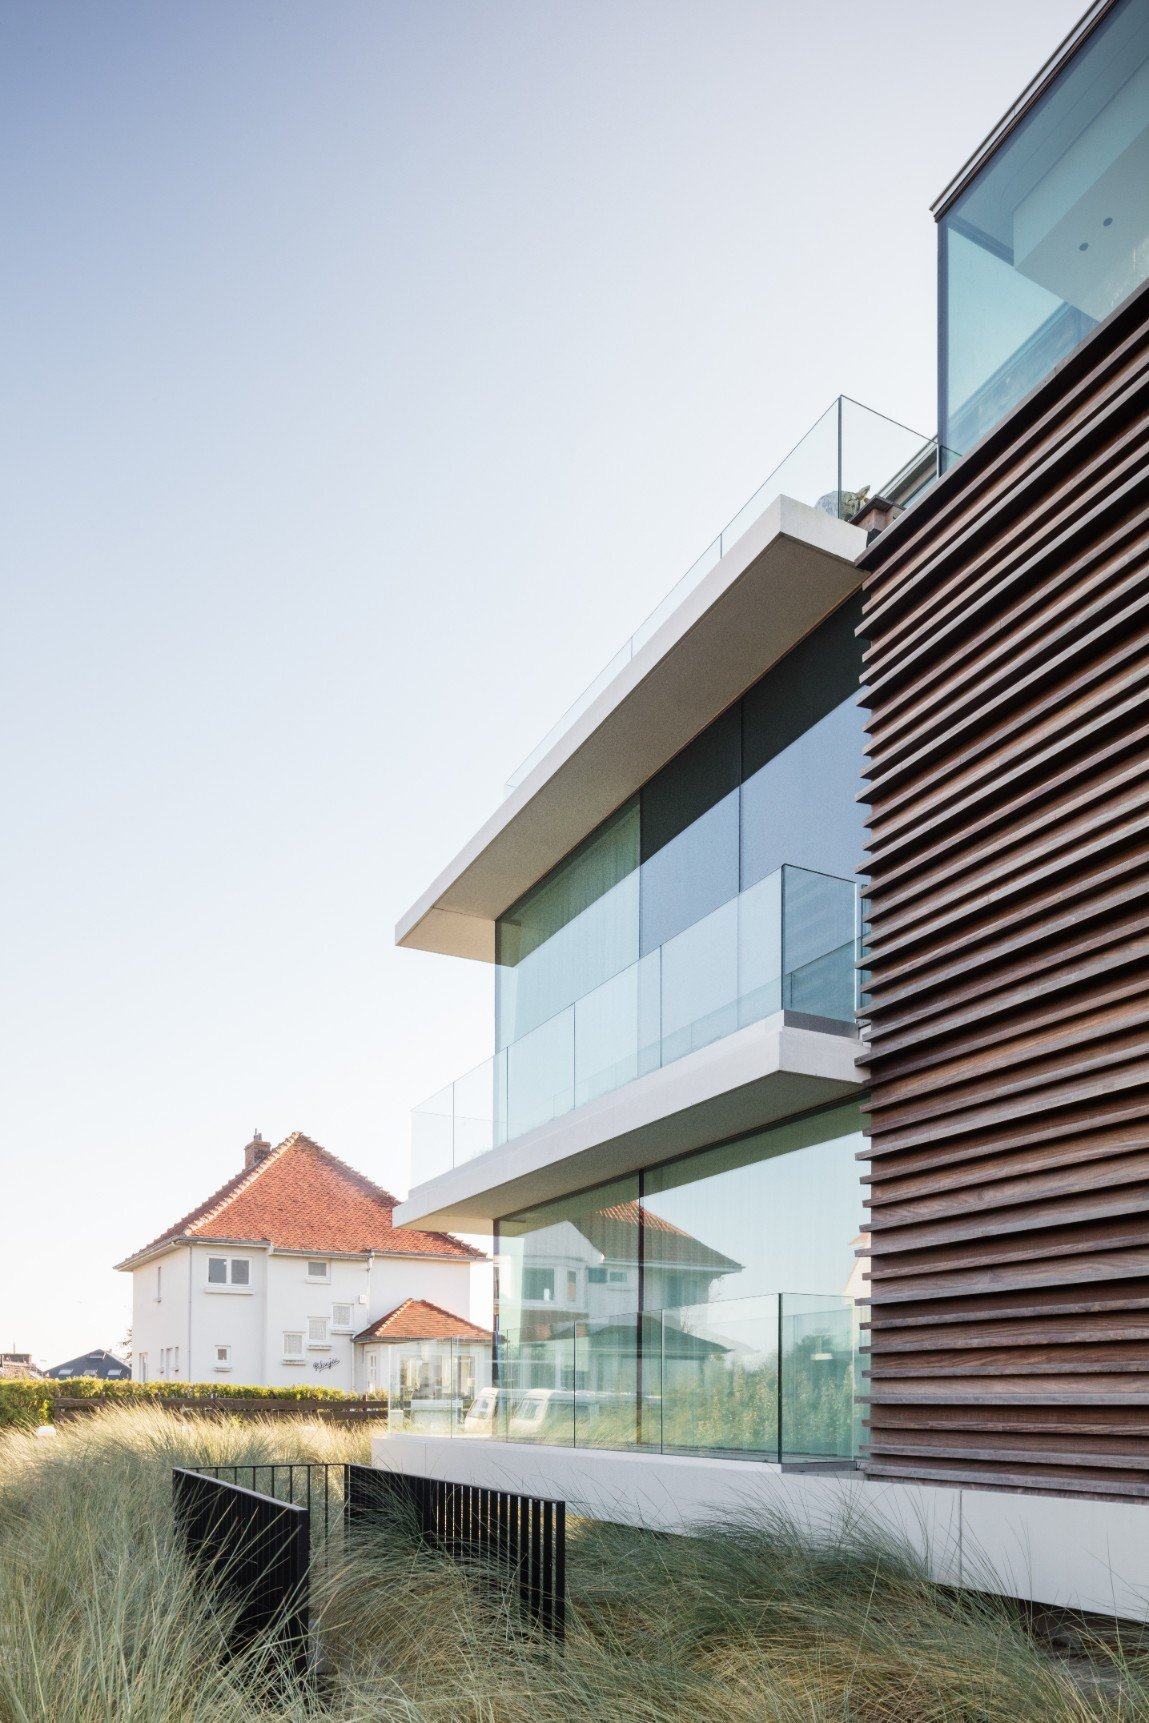 Rietveldprojects-Residence-ON-appartement-design-architectuur-kust-tvdv15